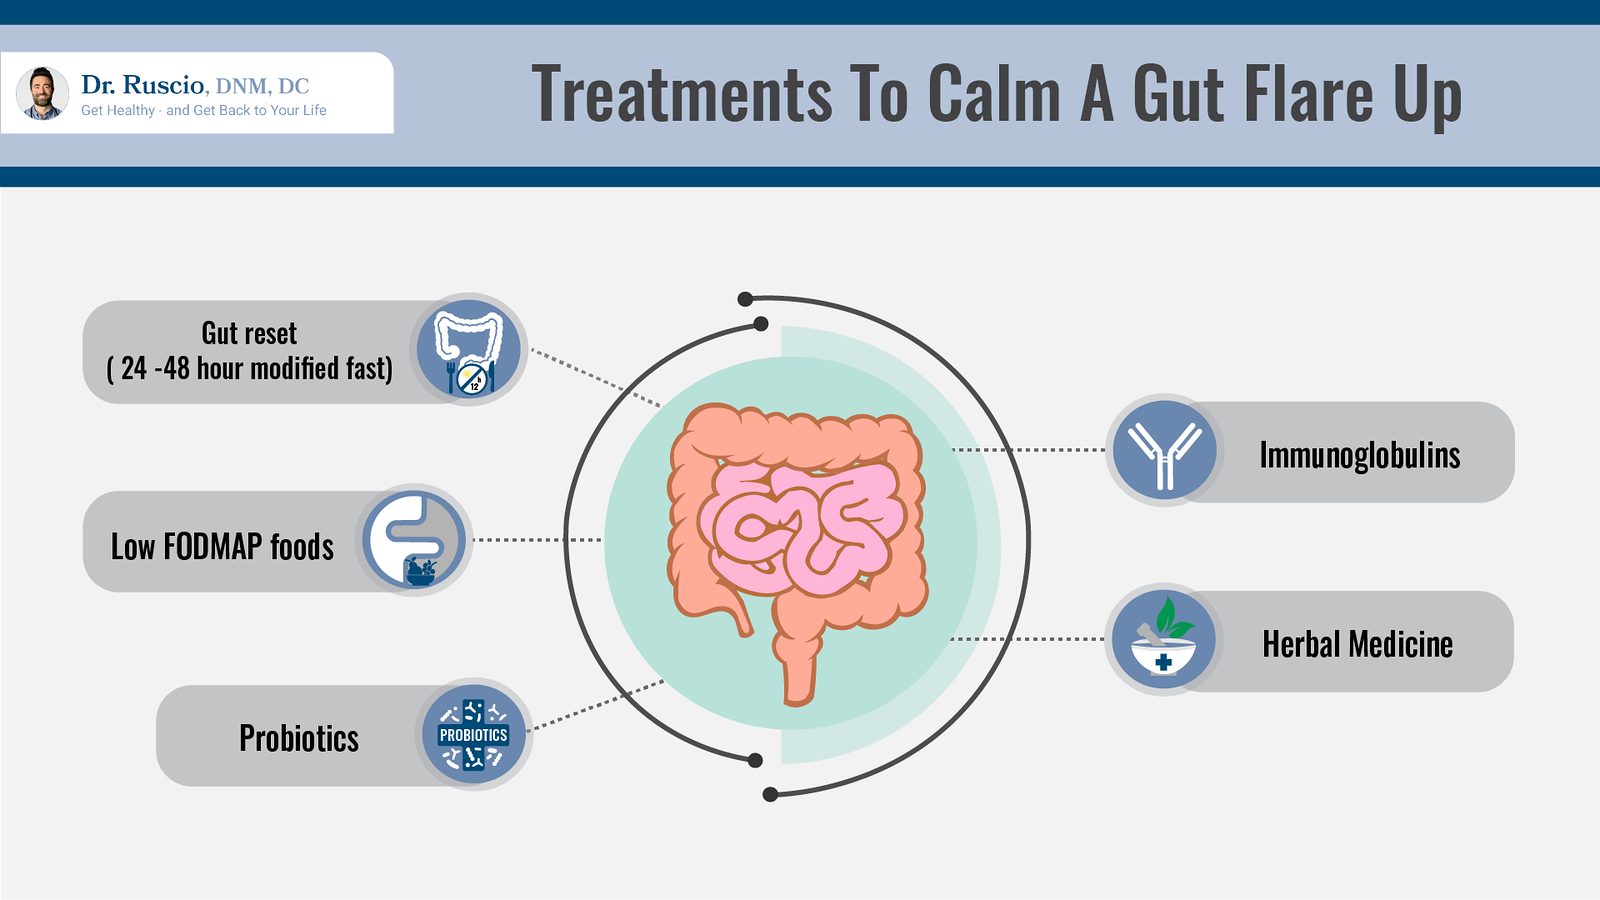 Treatments to Calm a Gut Flare Up